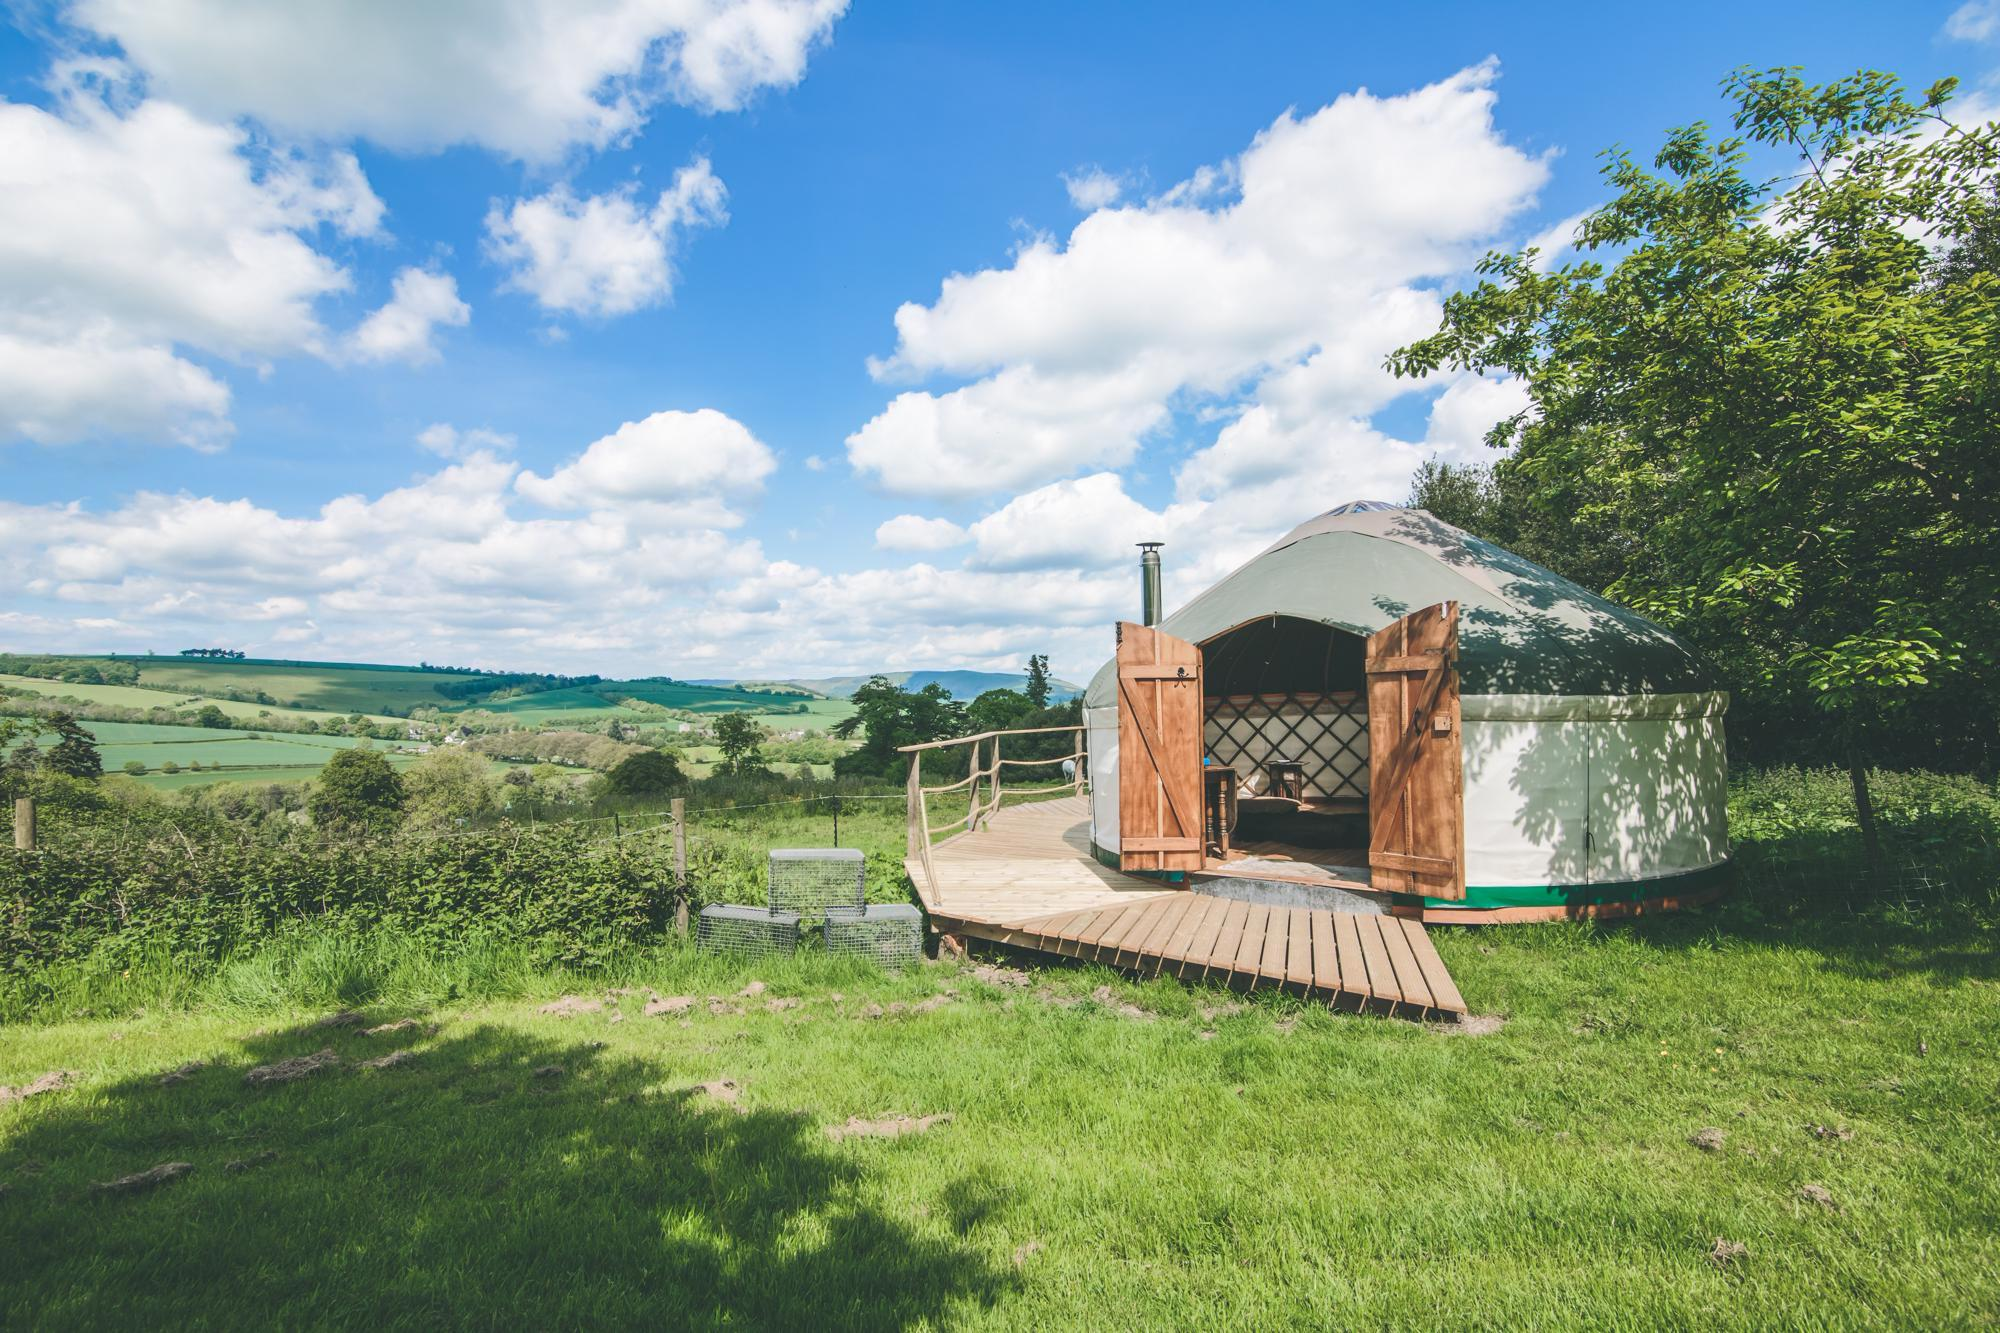 Hotels, Cottages, B&Bs & Glamping in Shropshire